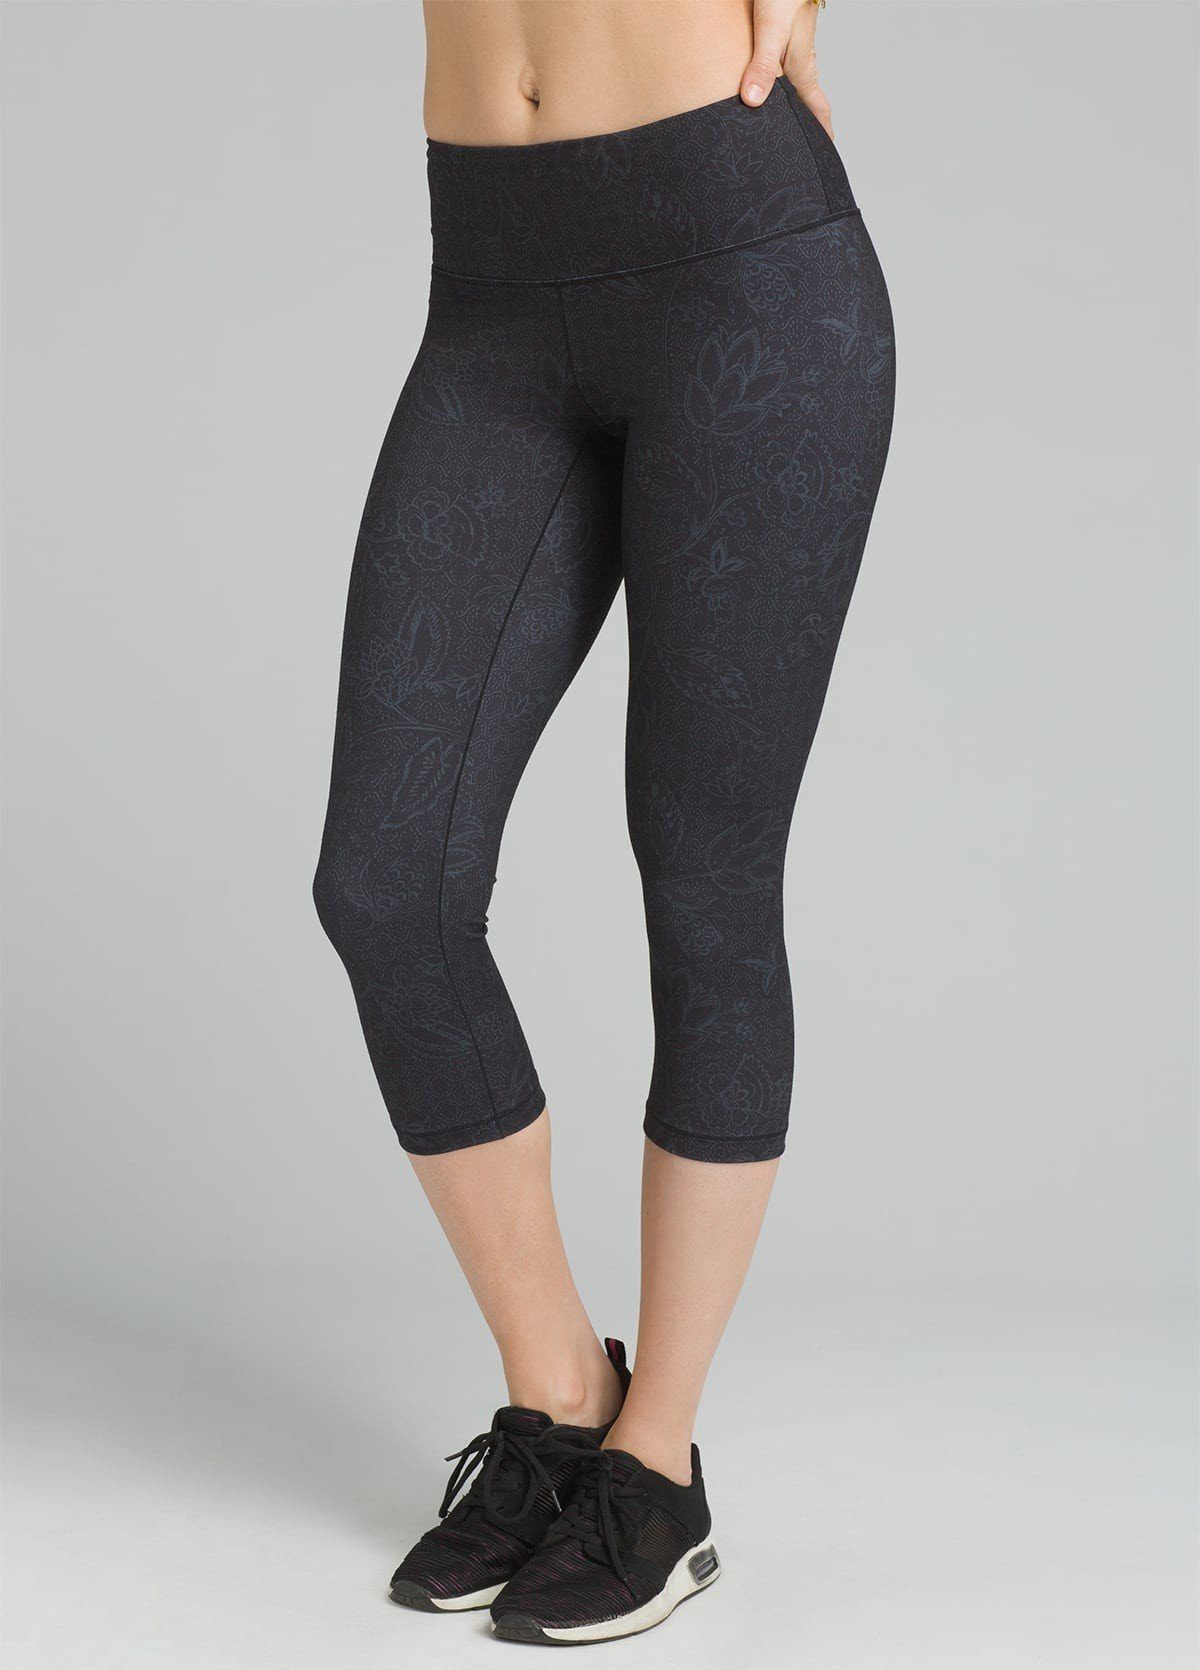 PrAna - Pillar Printed Capri - Recycled Polyester - Weekendbee - sustainable sportswear